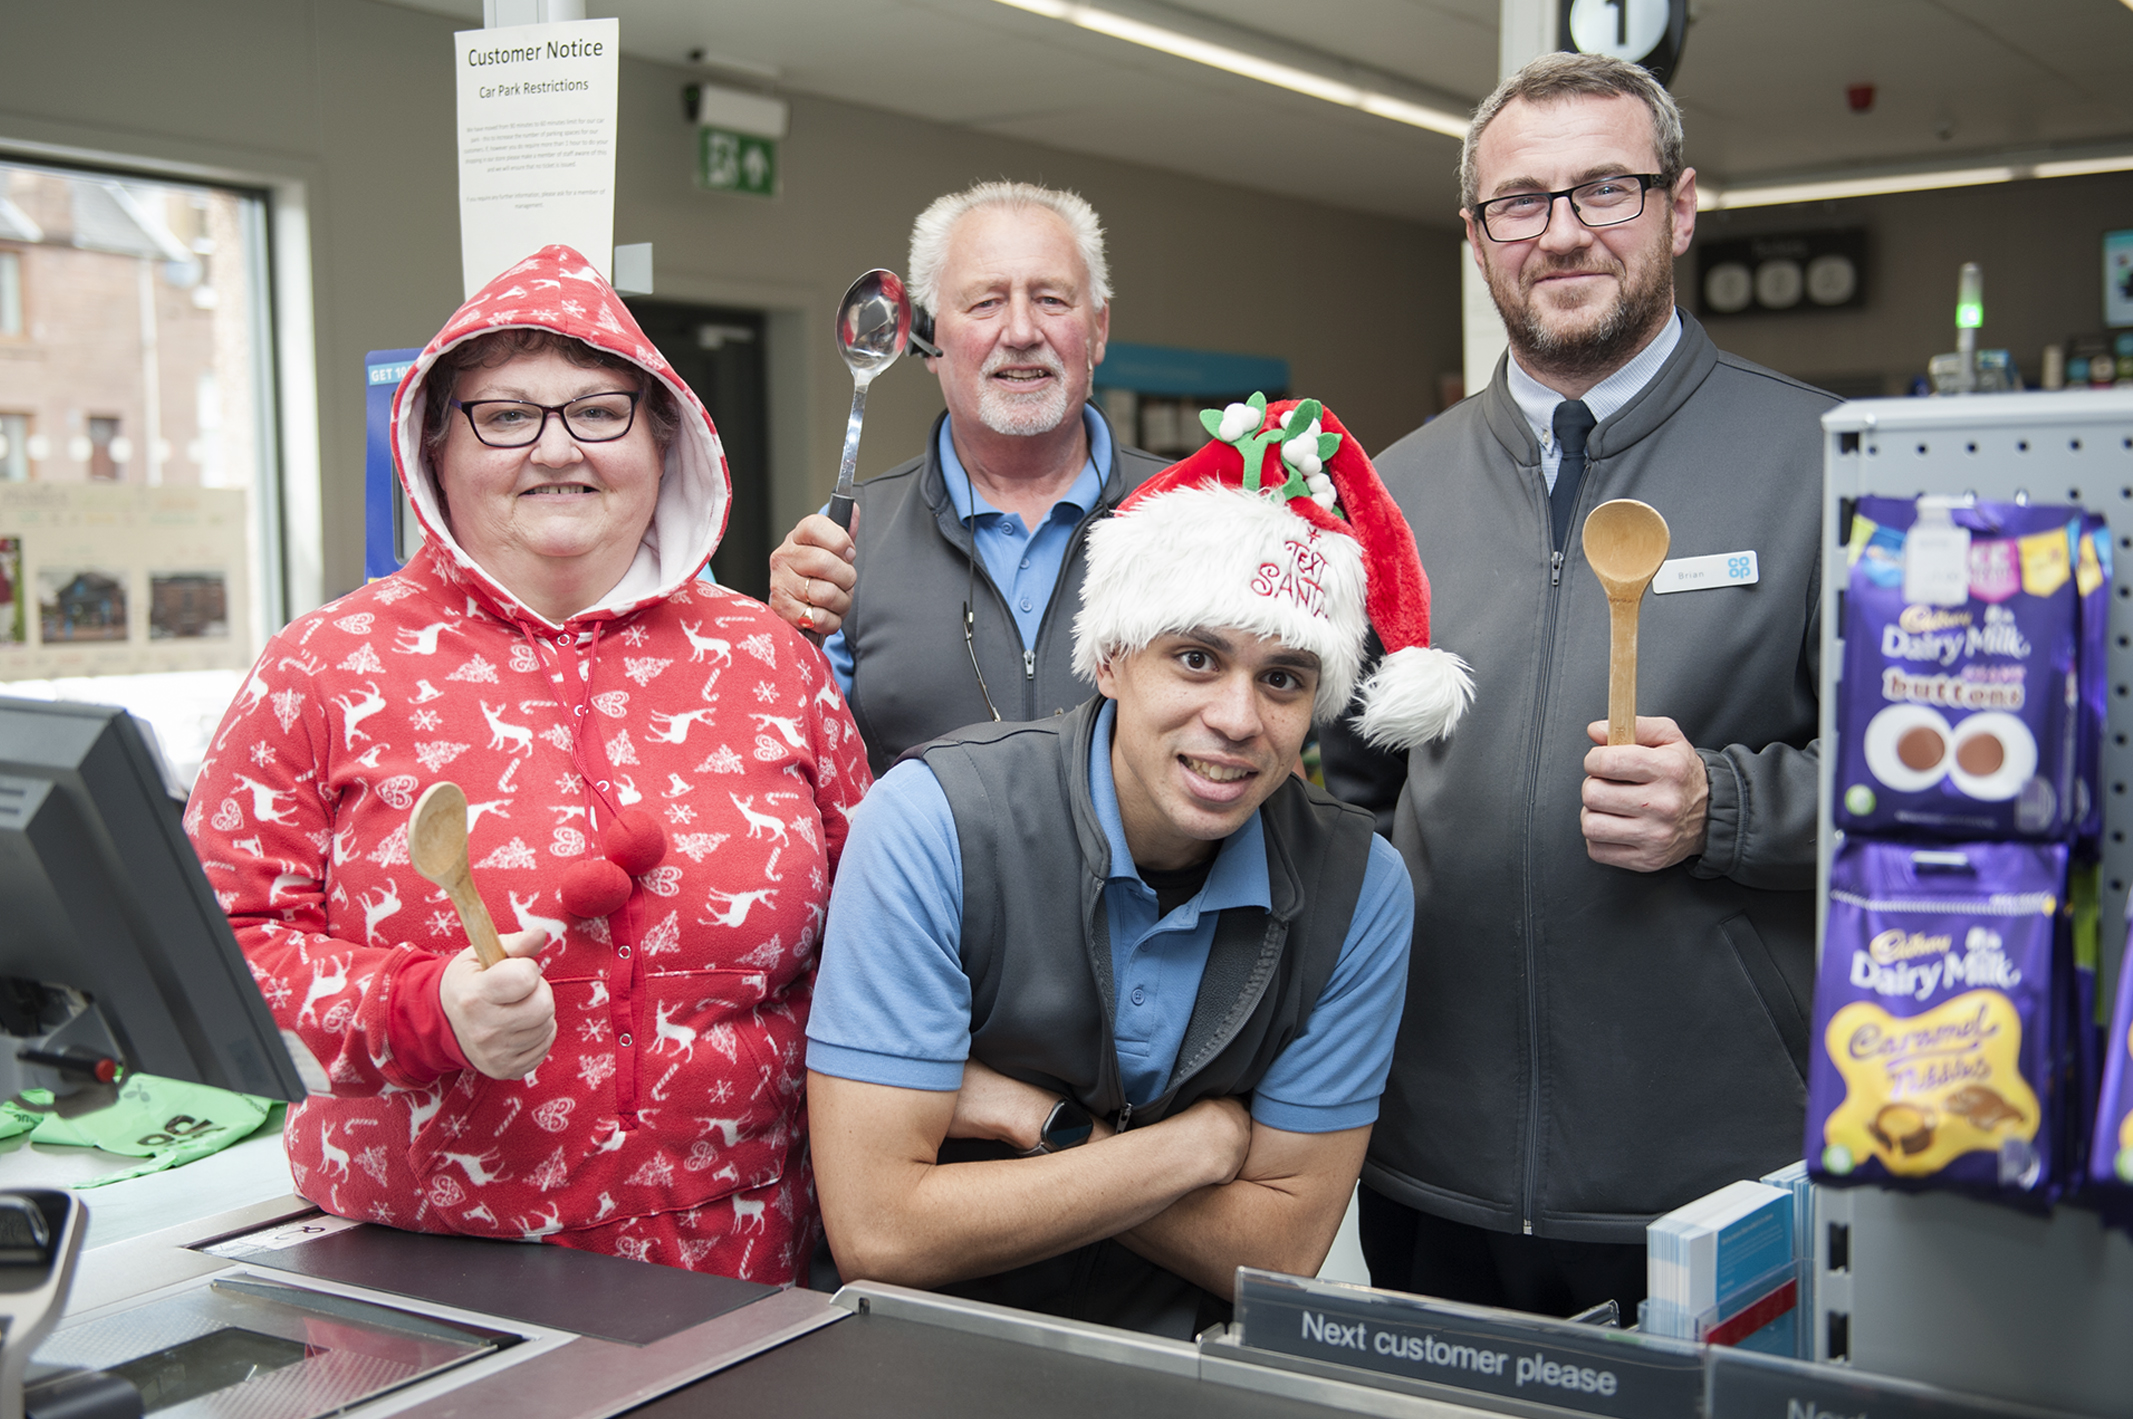 Heather Kelly, John Downie, Brian Aberdeen and Rory Devaughn, are hoping to cook up a treat for those facing Christmas day alone.